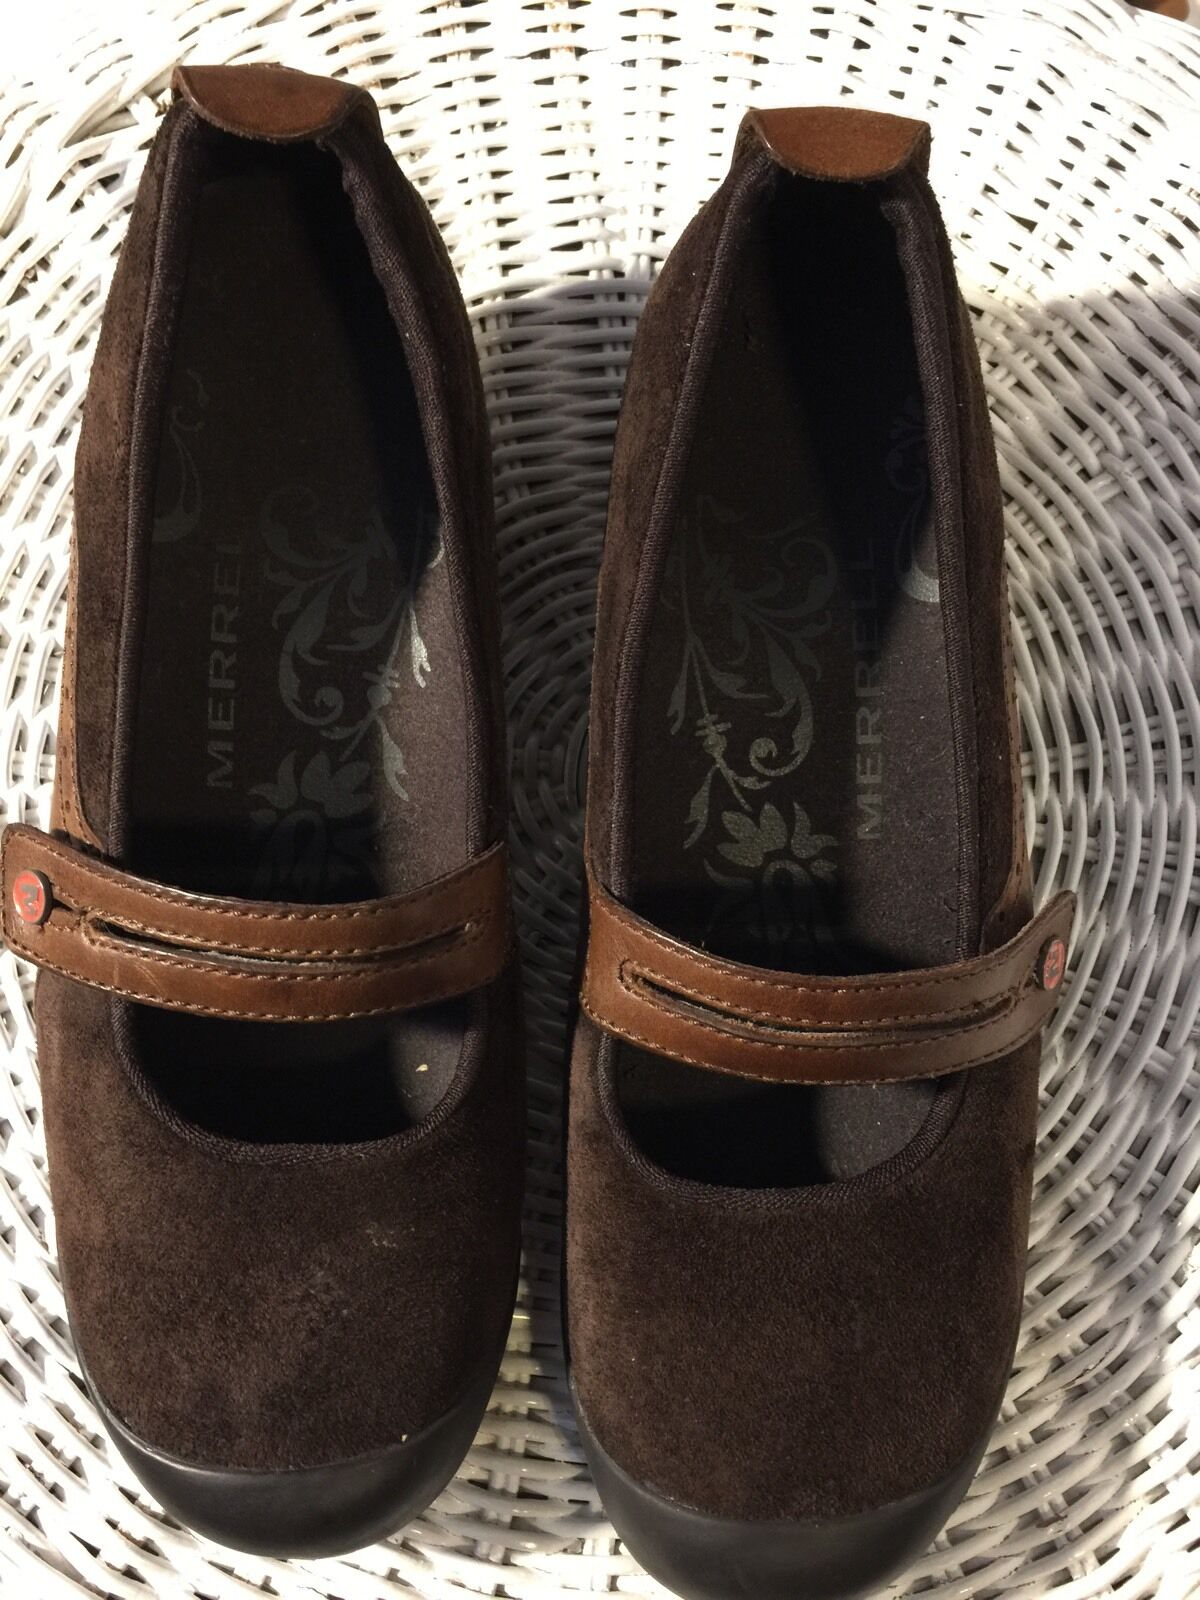 shoes, Women's BY MERRELL, Chocolate brown genuine leather suede Sz8M Nearly new